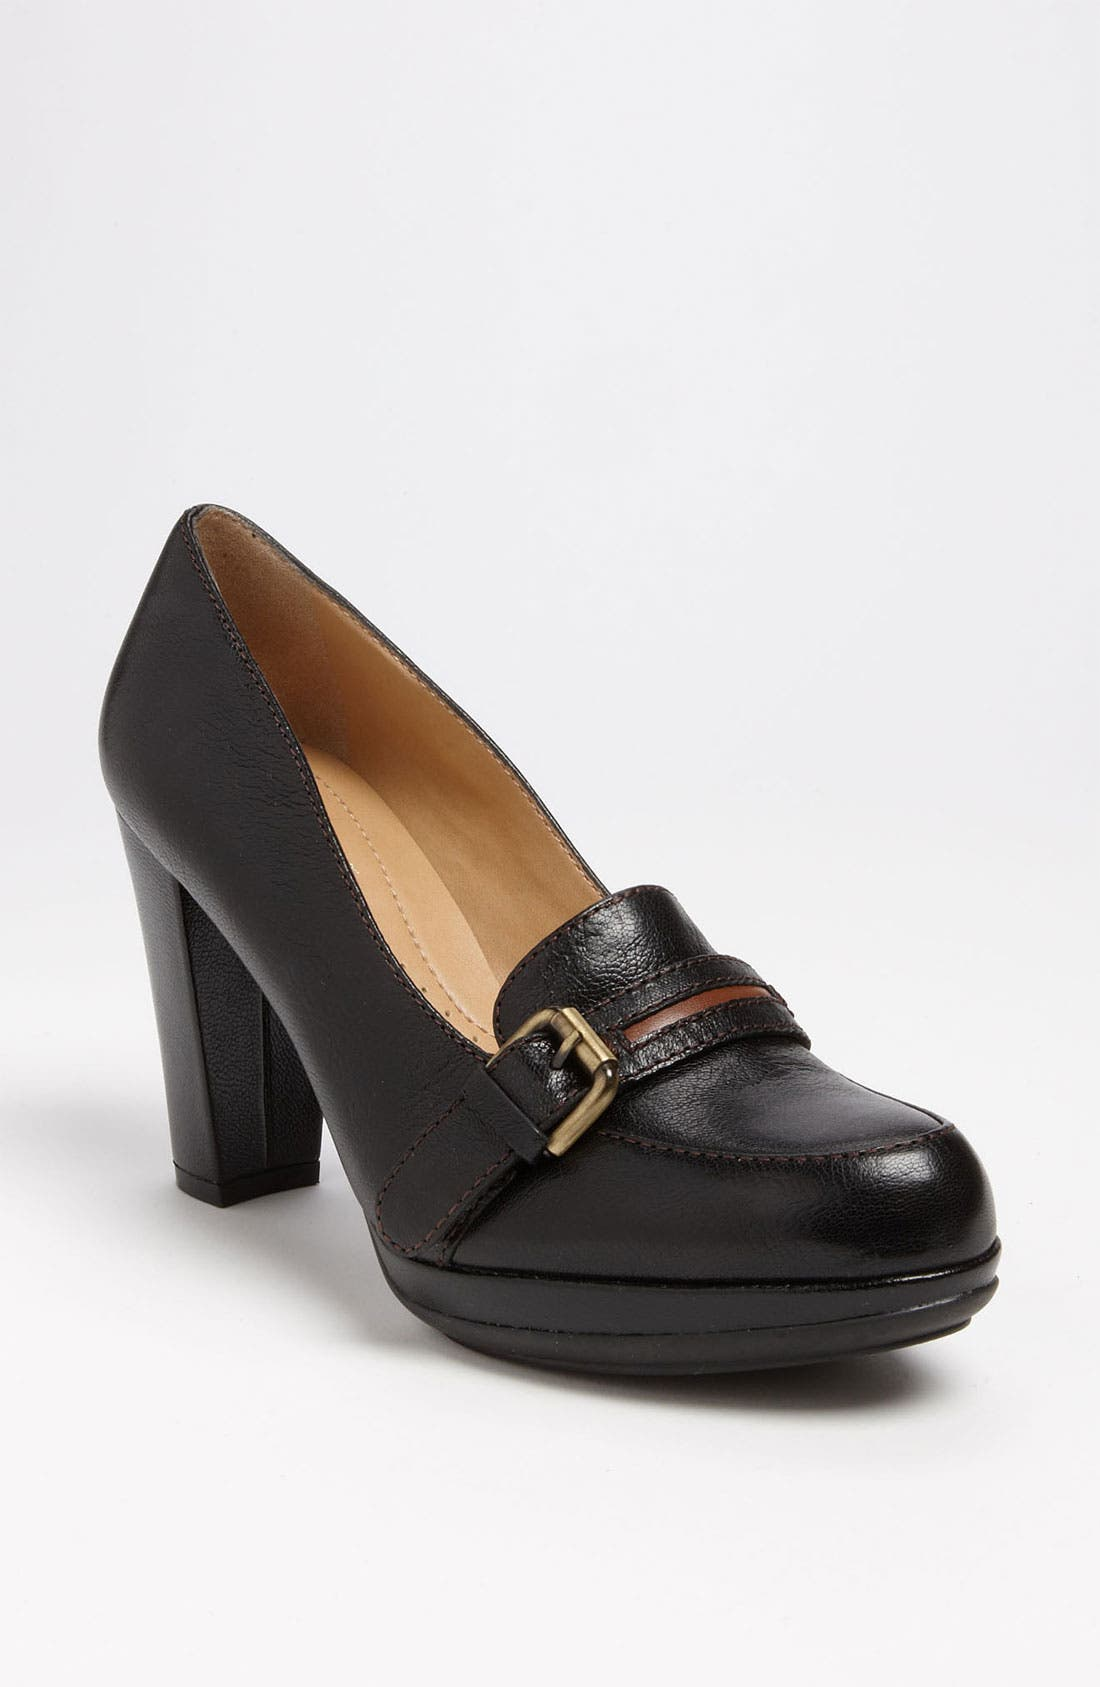 Alternate Image 1 Selected - Naturalizer 'Kylie' Pump